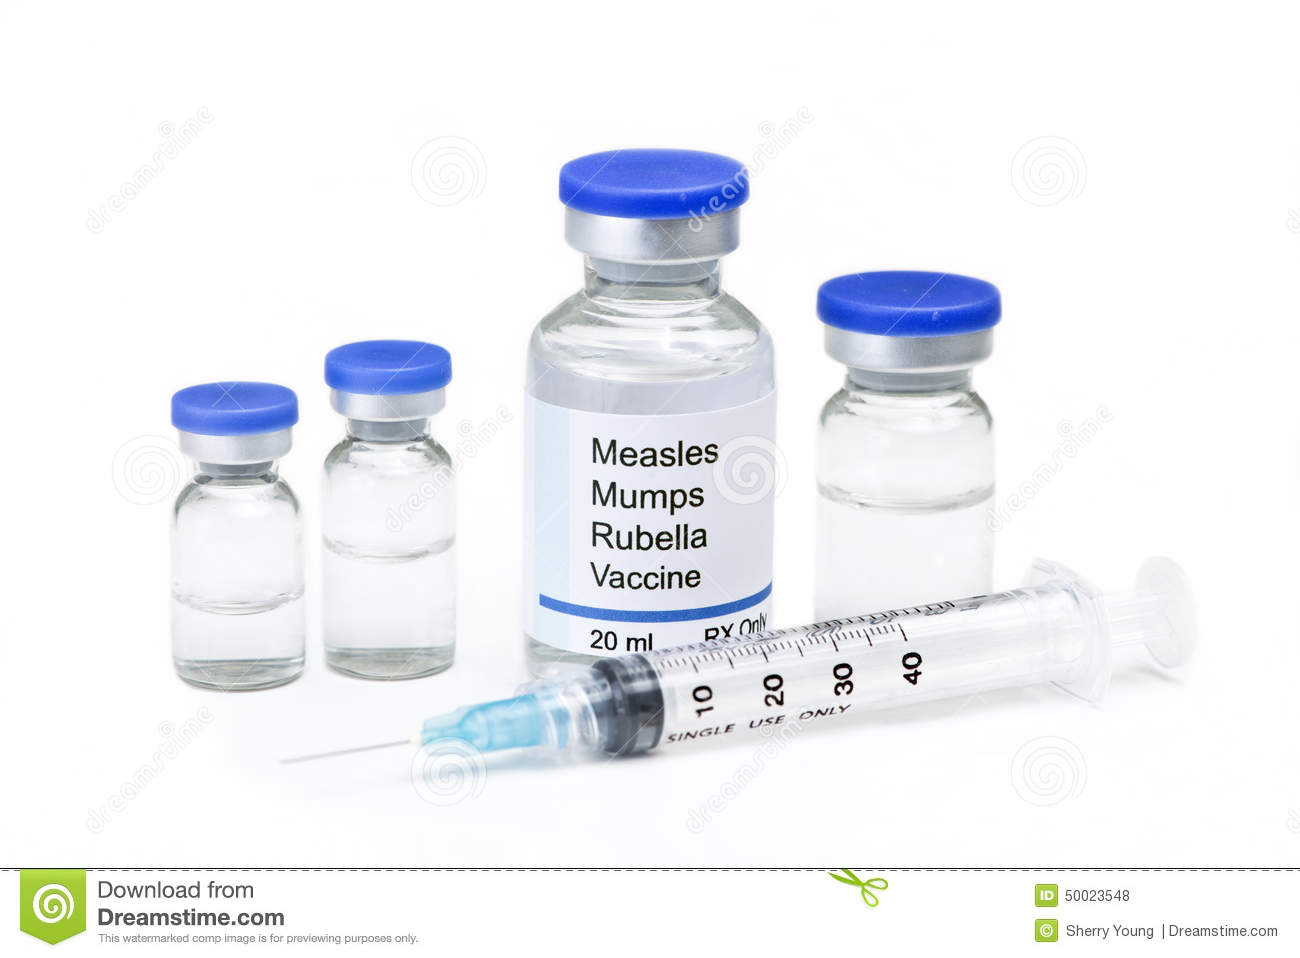 Measles Mumps Rubella - Fountain Of Youth